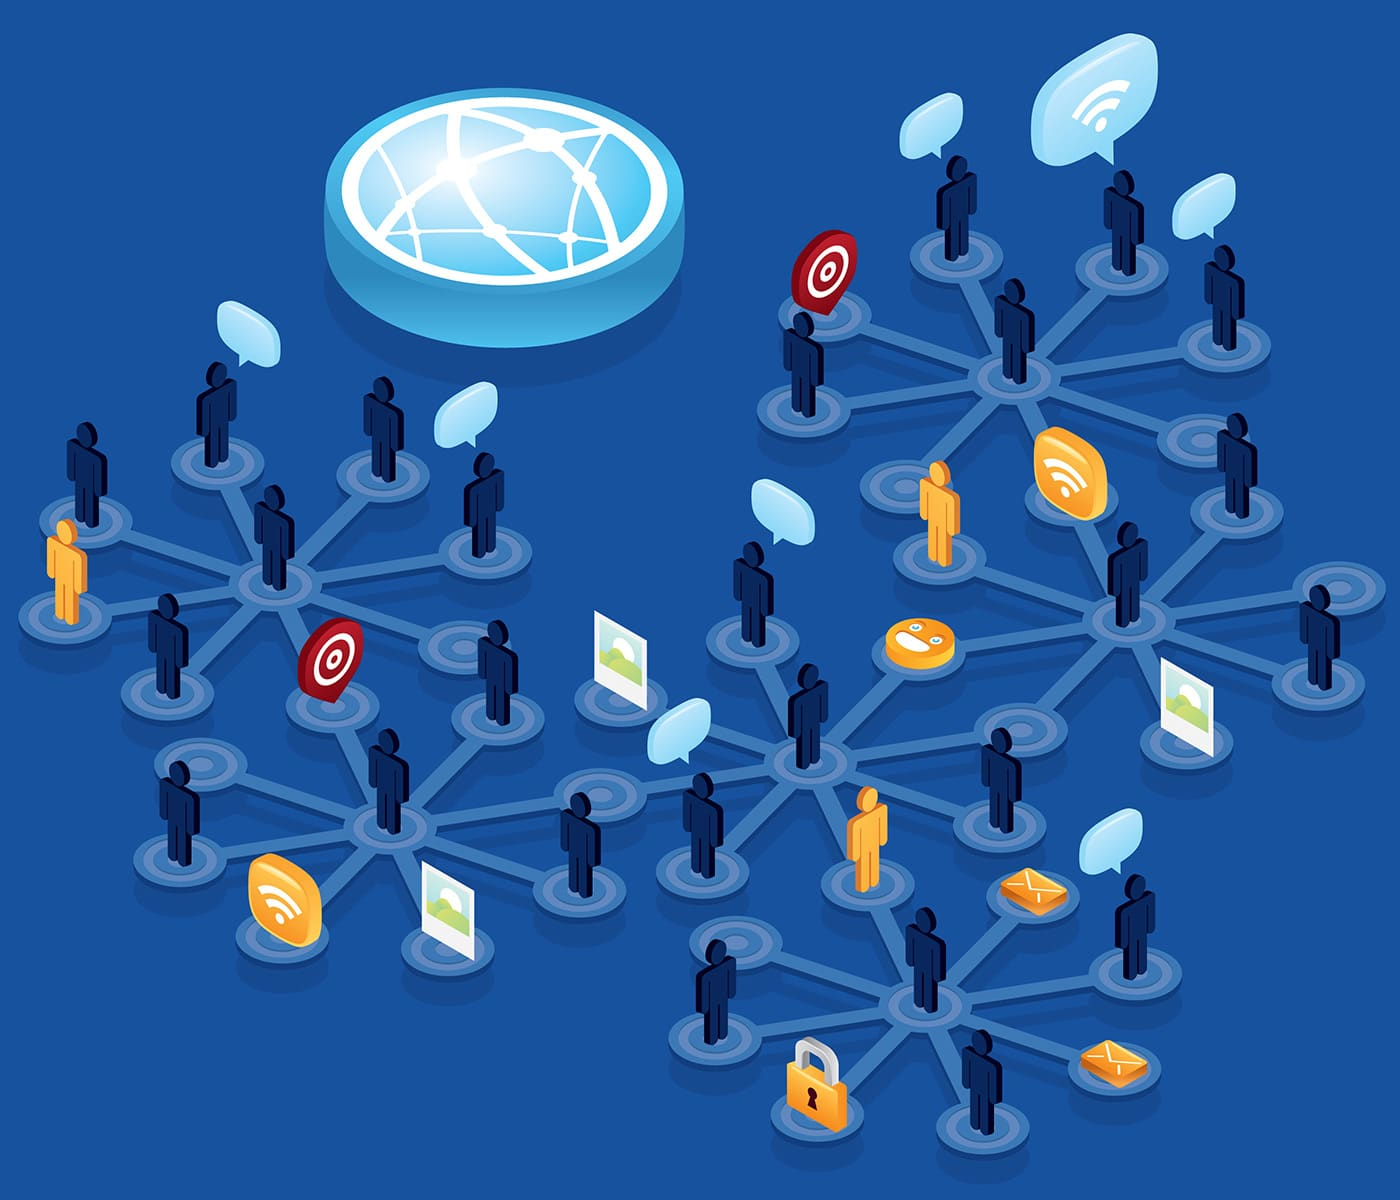 social-network-image